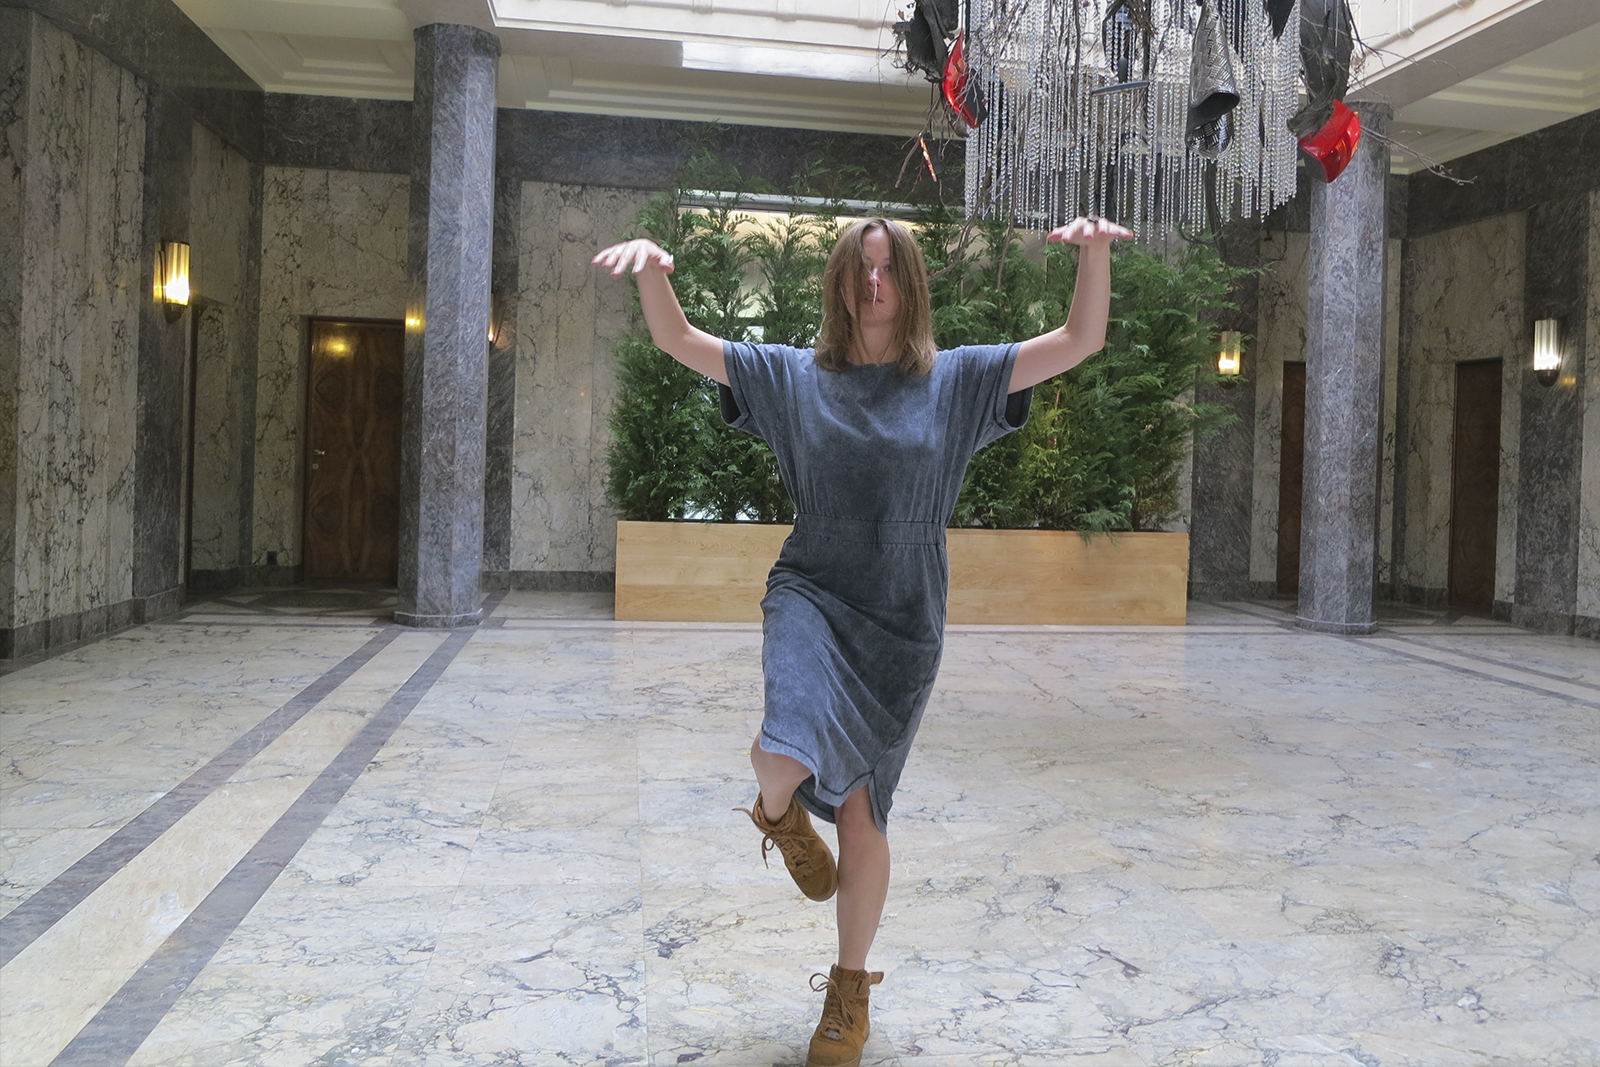 Janine Harrington in the middle of performing a movement sequence in the foyer of a gallery space.